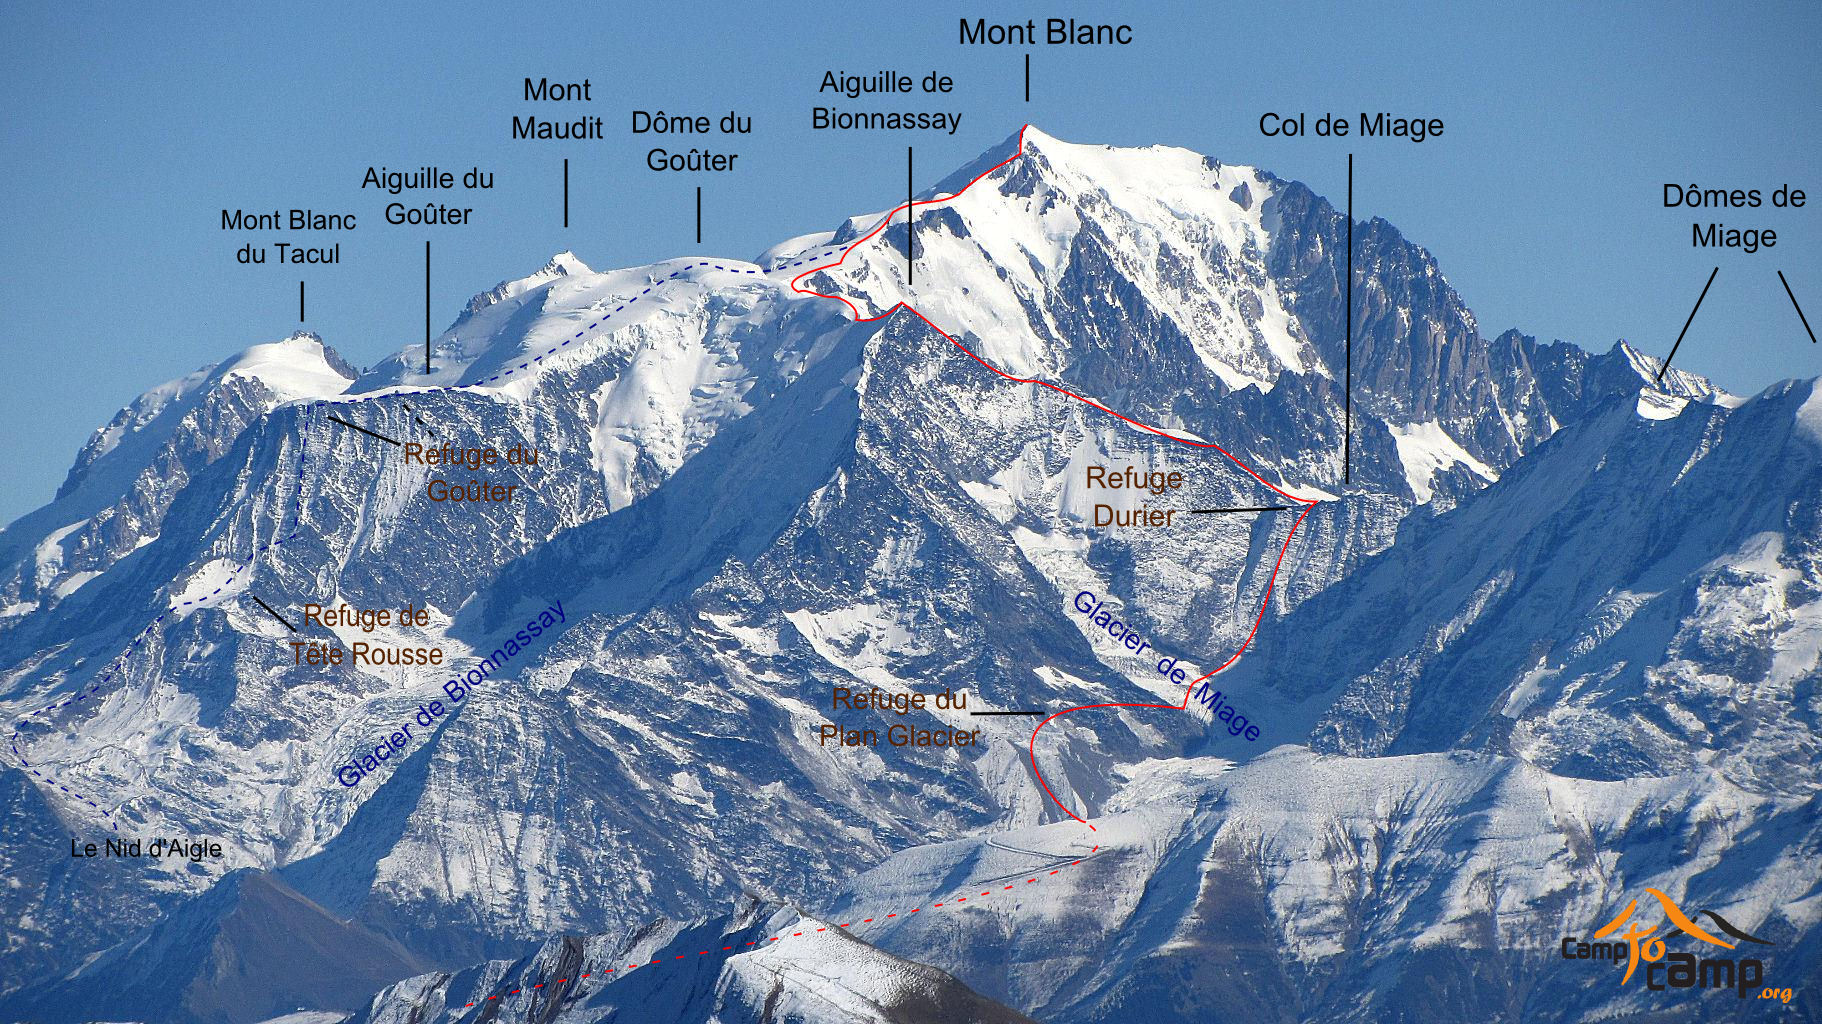 Association rencontres du mont blanc